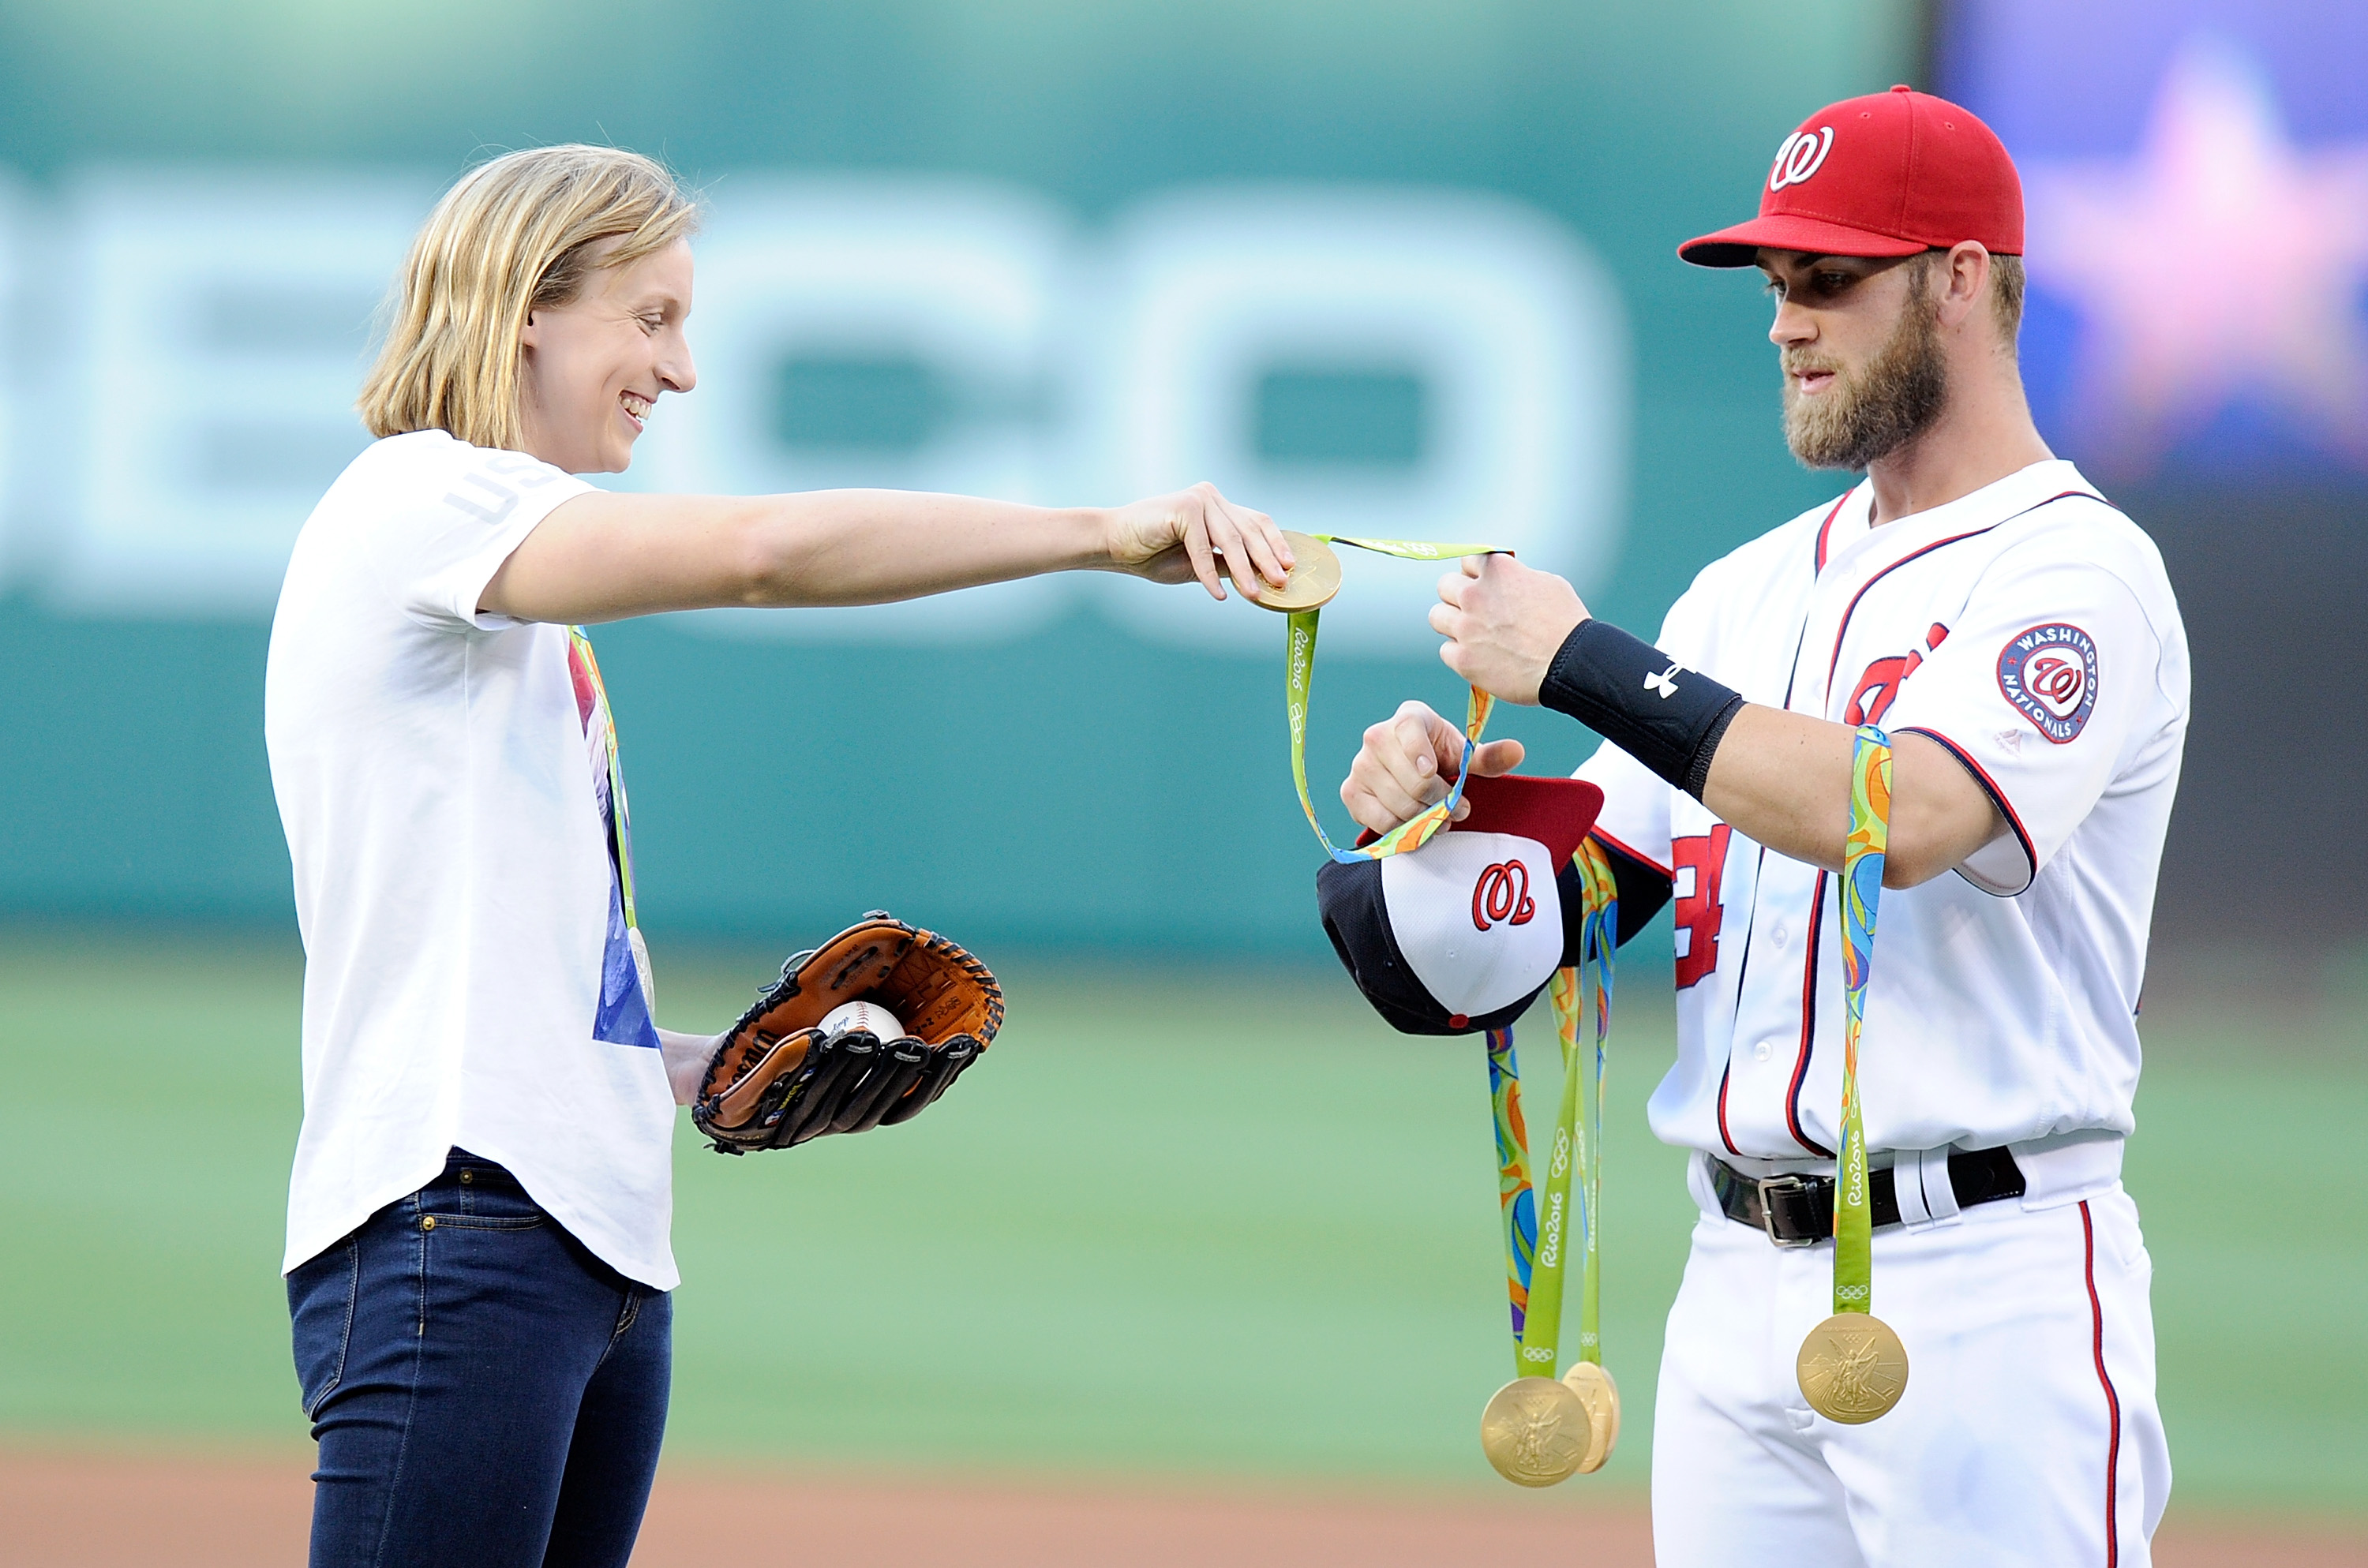 Katie Ledecky hands her Olympic medals to Bryce Harper before throwing out the opening pitch at Nationals Park on Aug. 24, 2016 in Washington, DC.